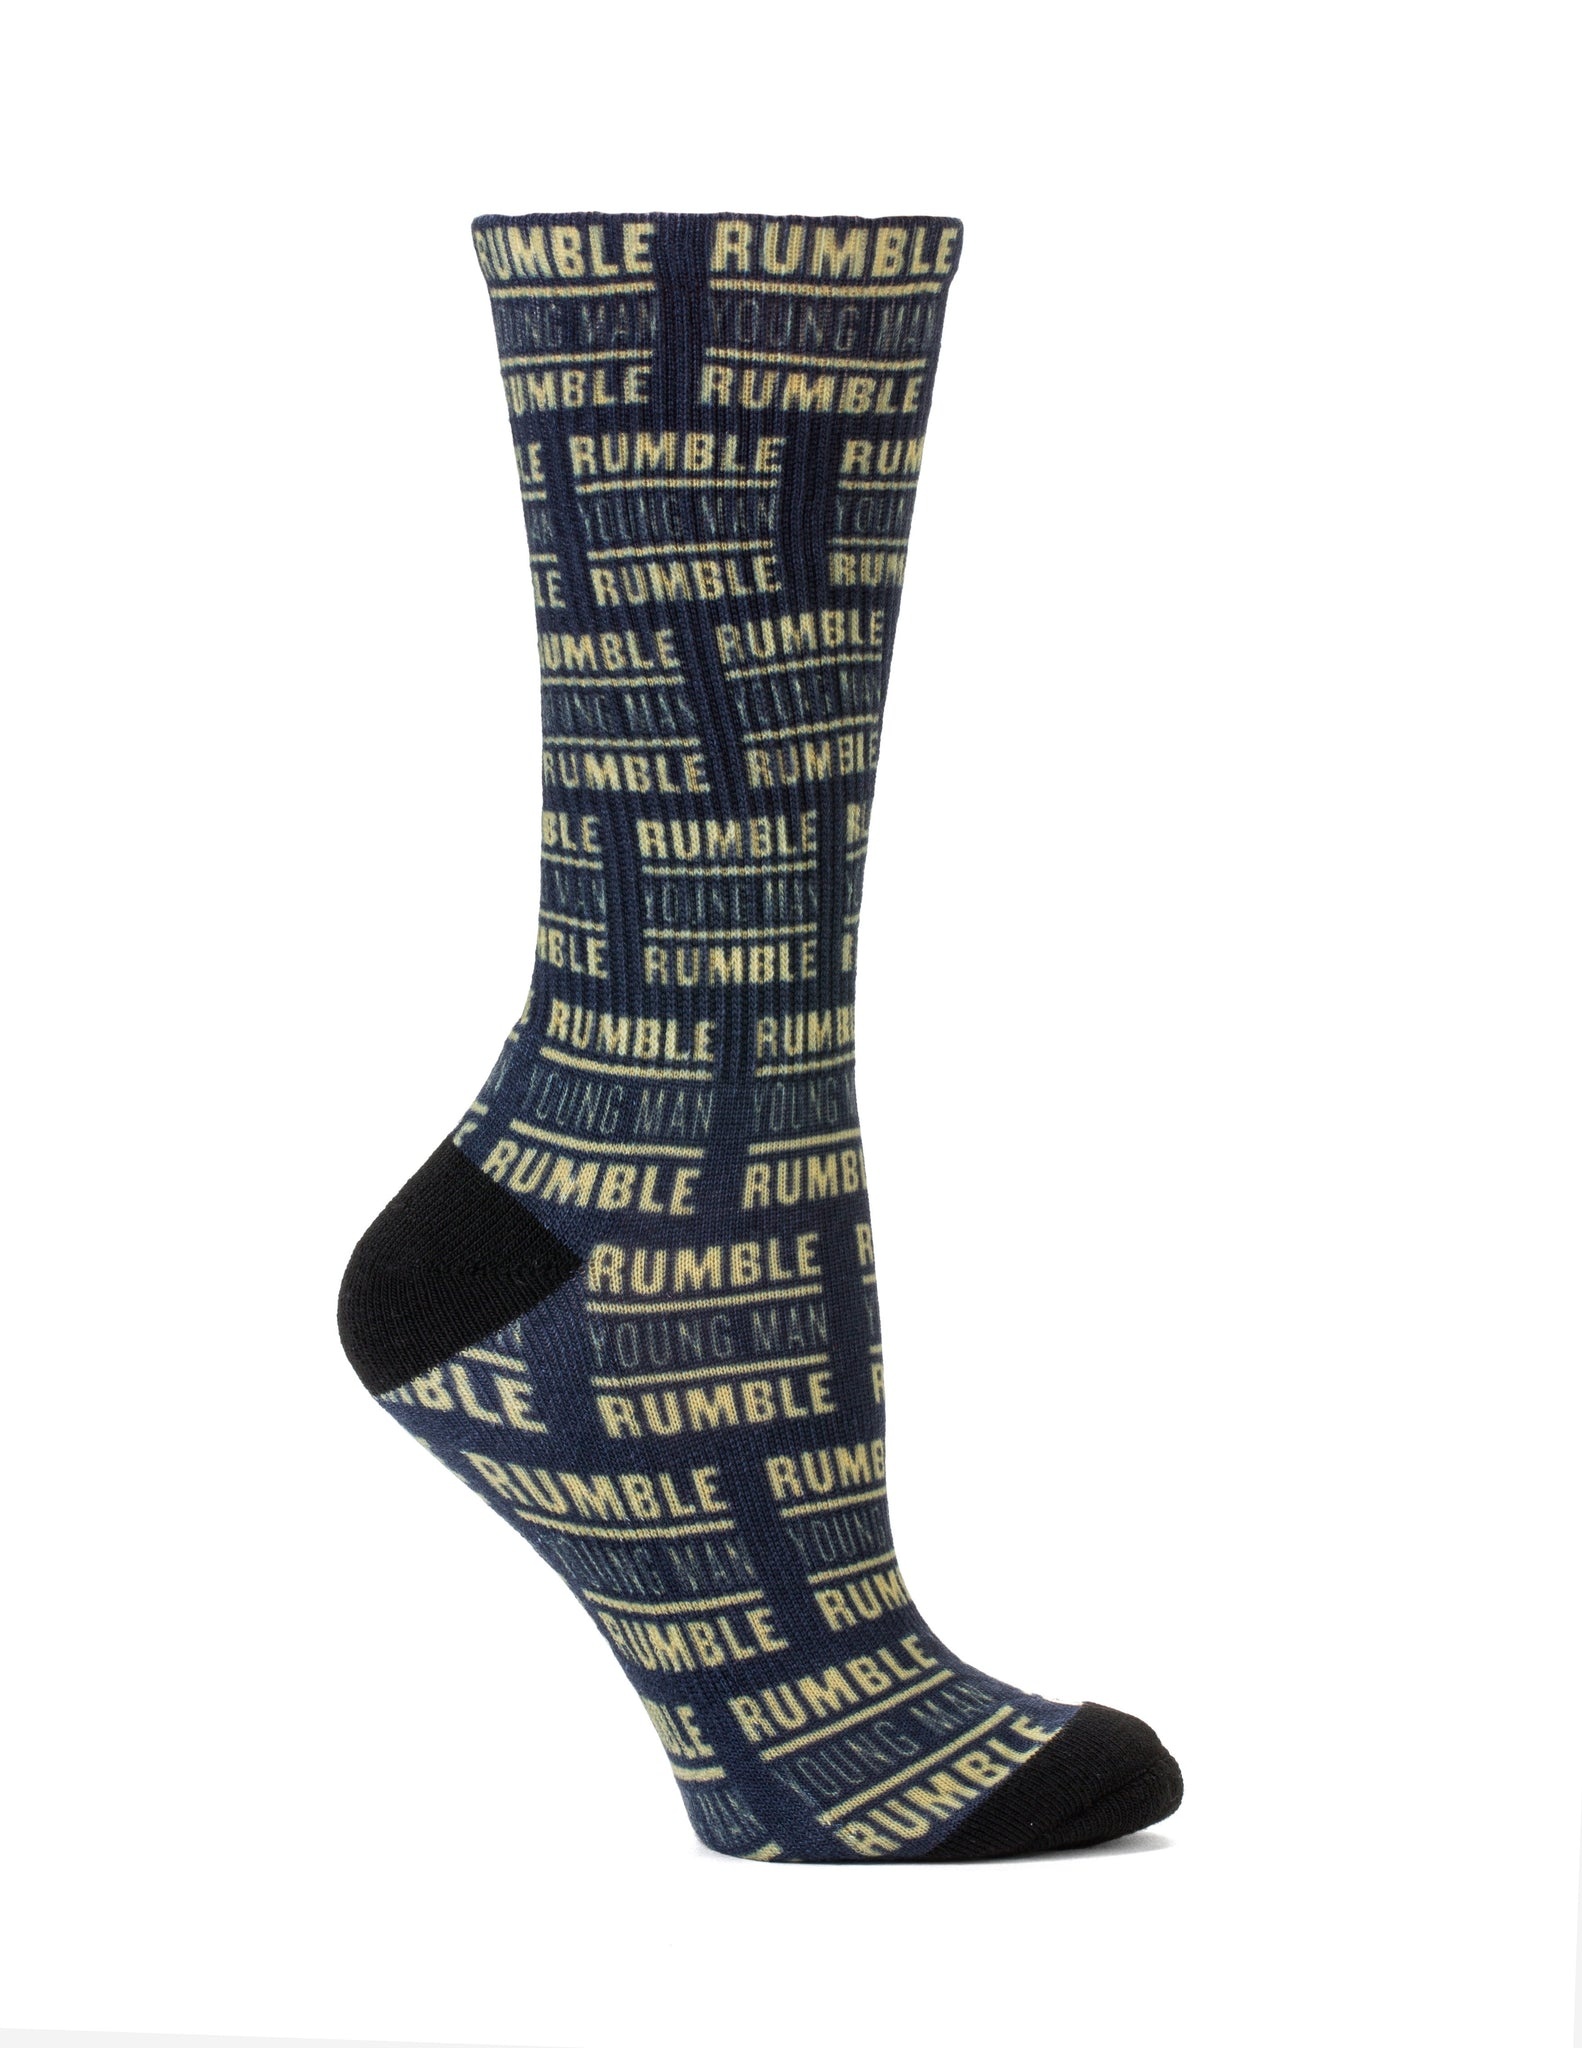 Fun Women Socks | Rumble Young Man Rumble | Free Shipping | CBMA | Ali